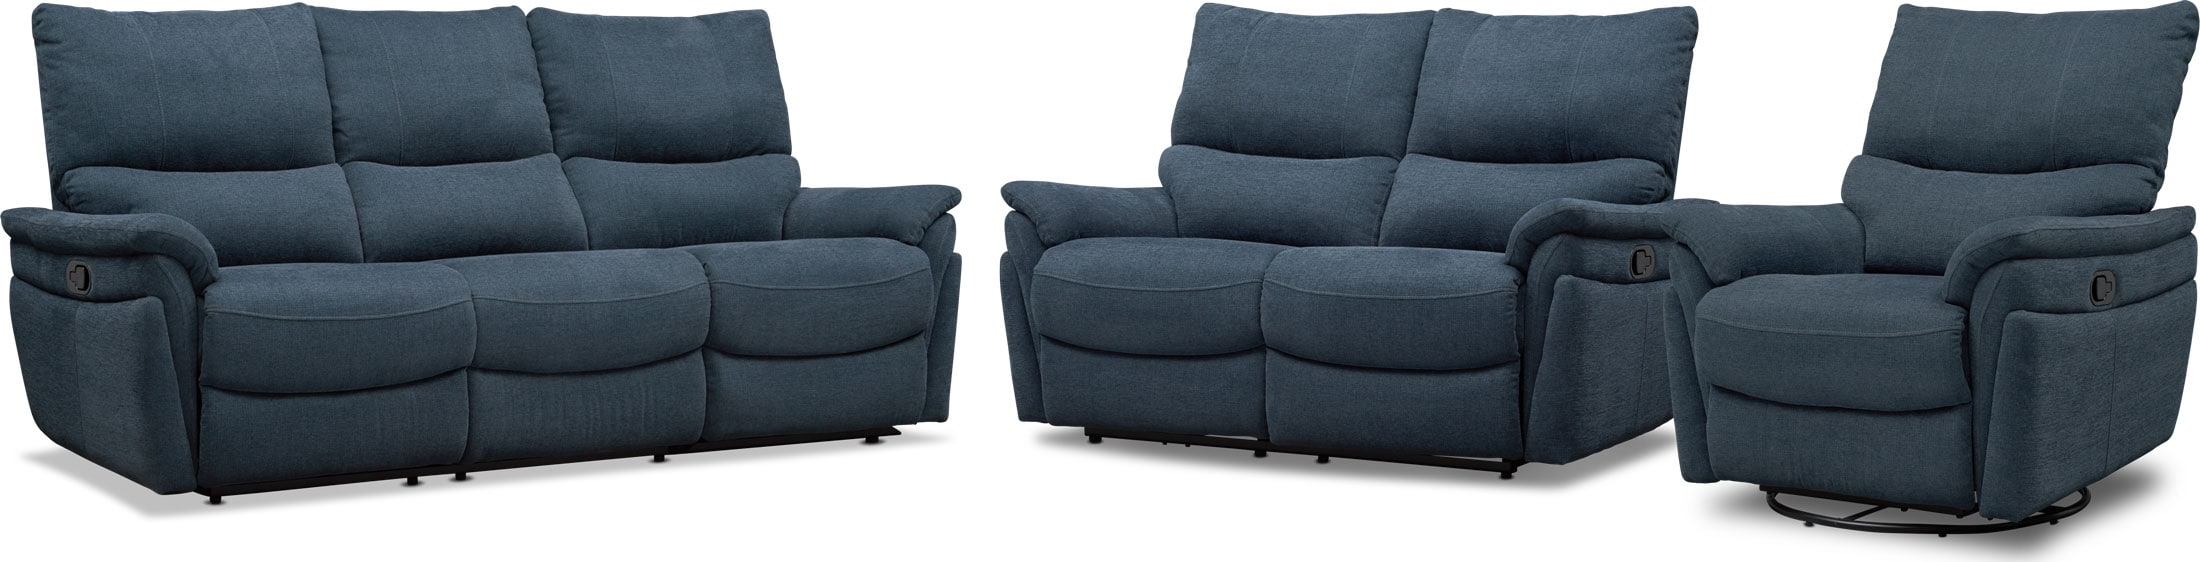 Living Room Furniture - Maddox Manual Reclining Sofa, Loveseat and Swivel Recliner